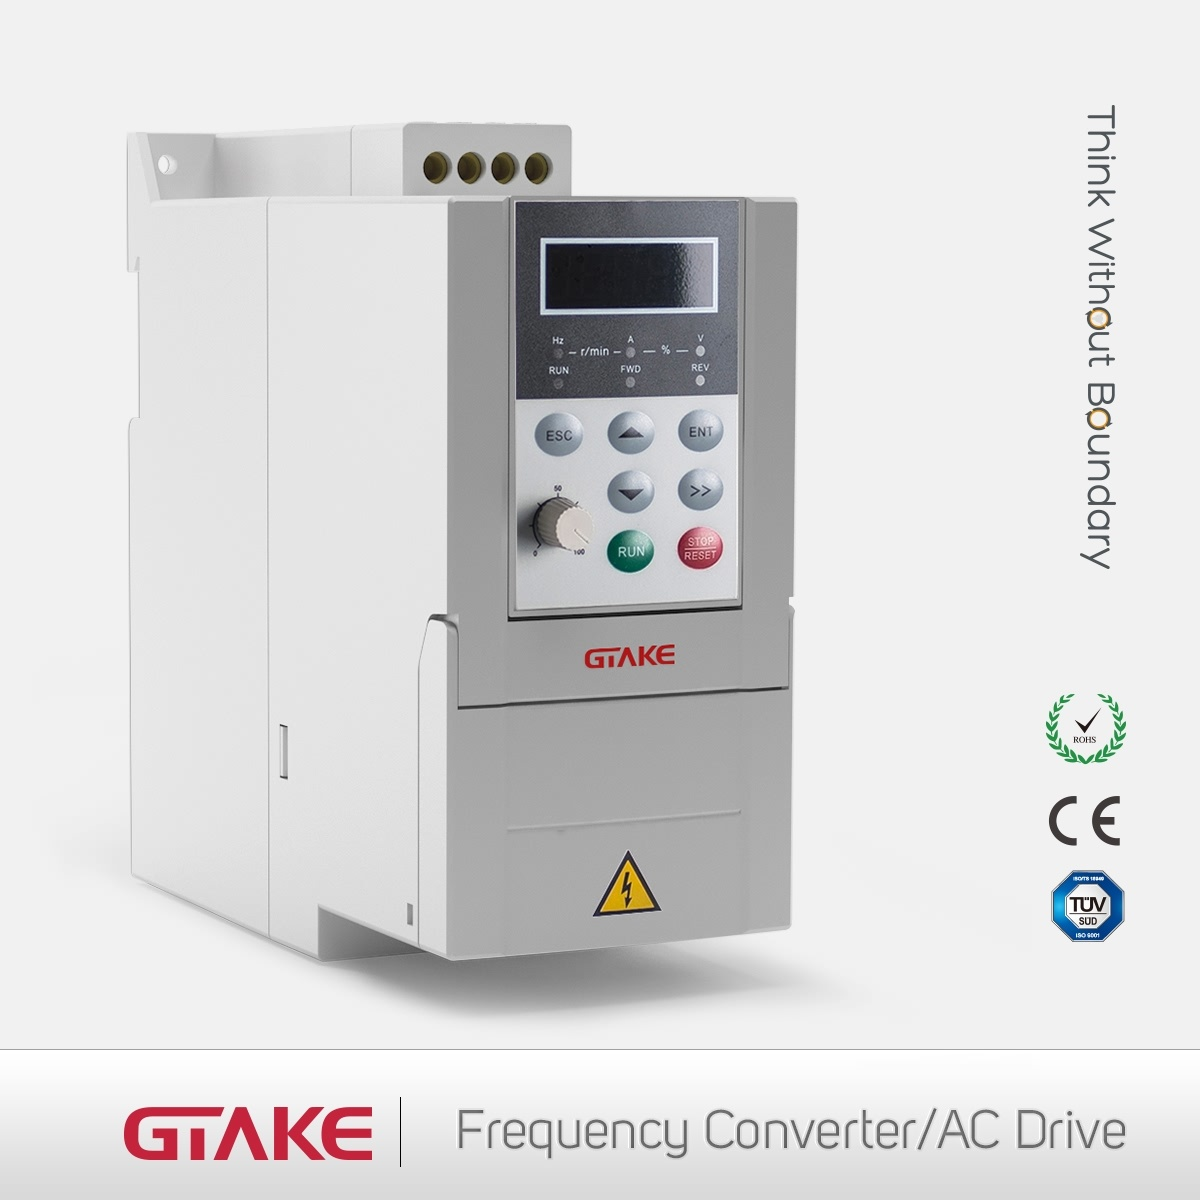 High-Performance Mini AC Drives Gk500 Series